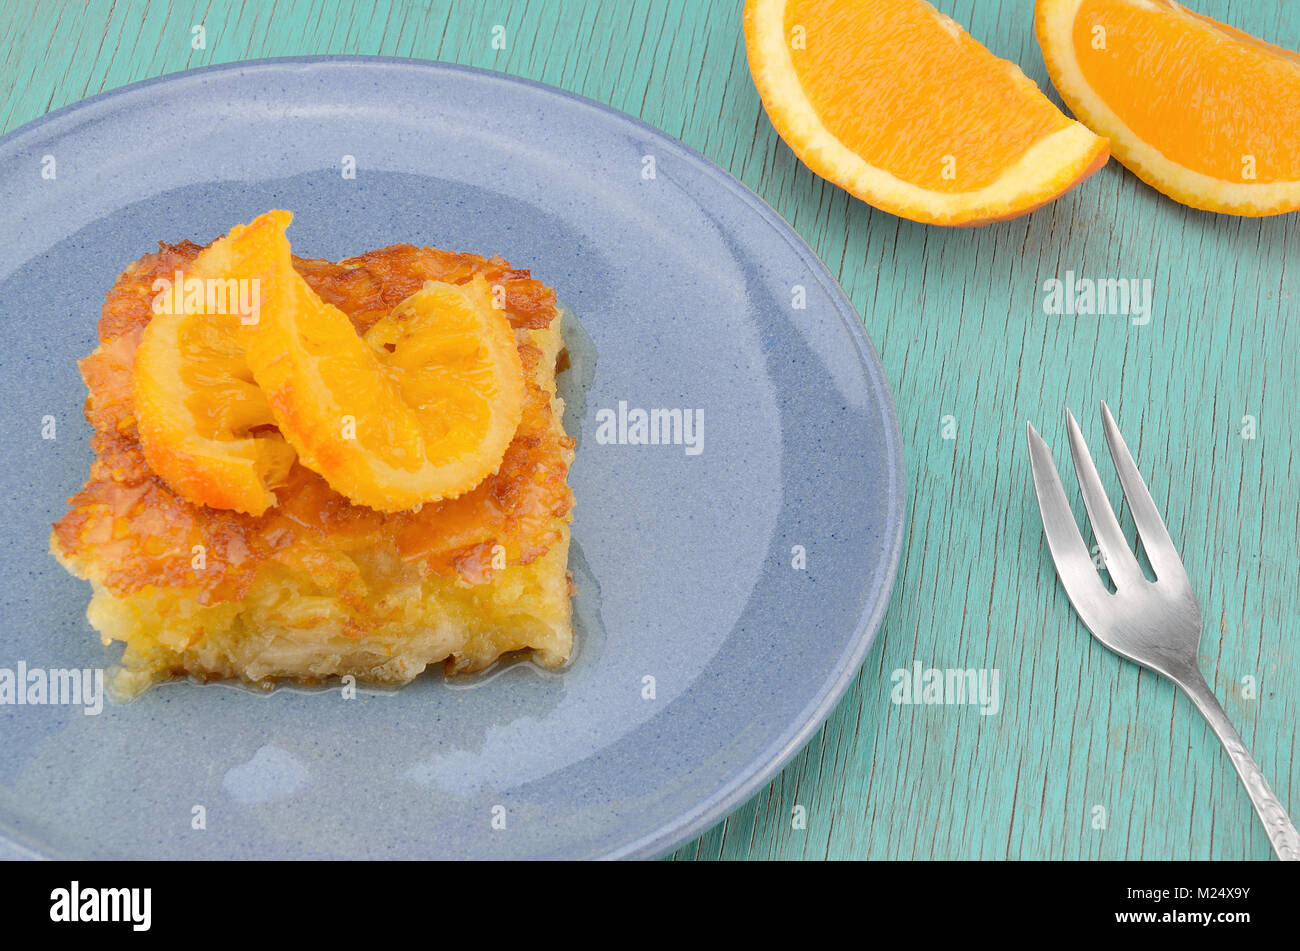 Piece of orange pie in plate with orange twist slice on top and two orange pieces Stock Photo